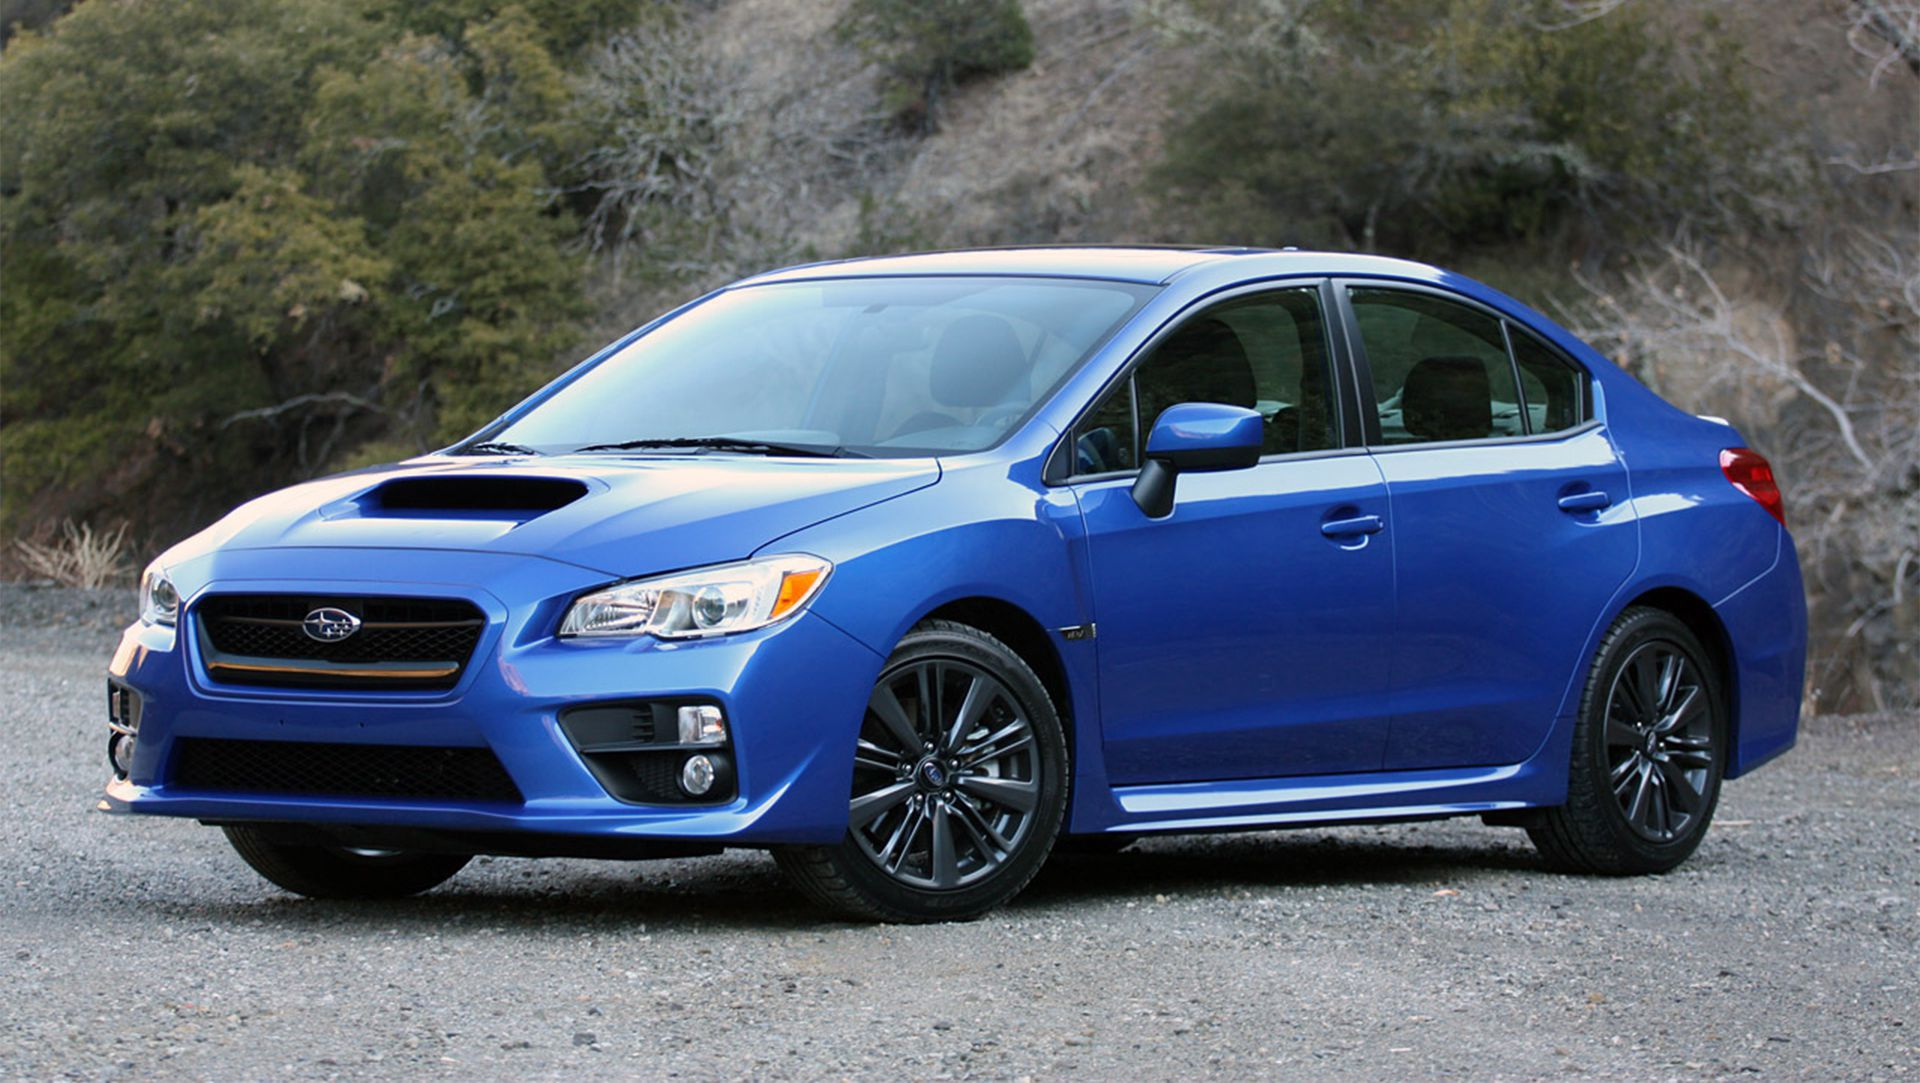 Toyota Wrx >> Toyota Corolla Sedan Subaru Wrx Earn Five Star Ancap Safety Ratings